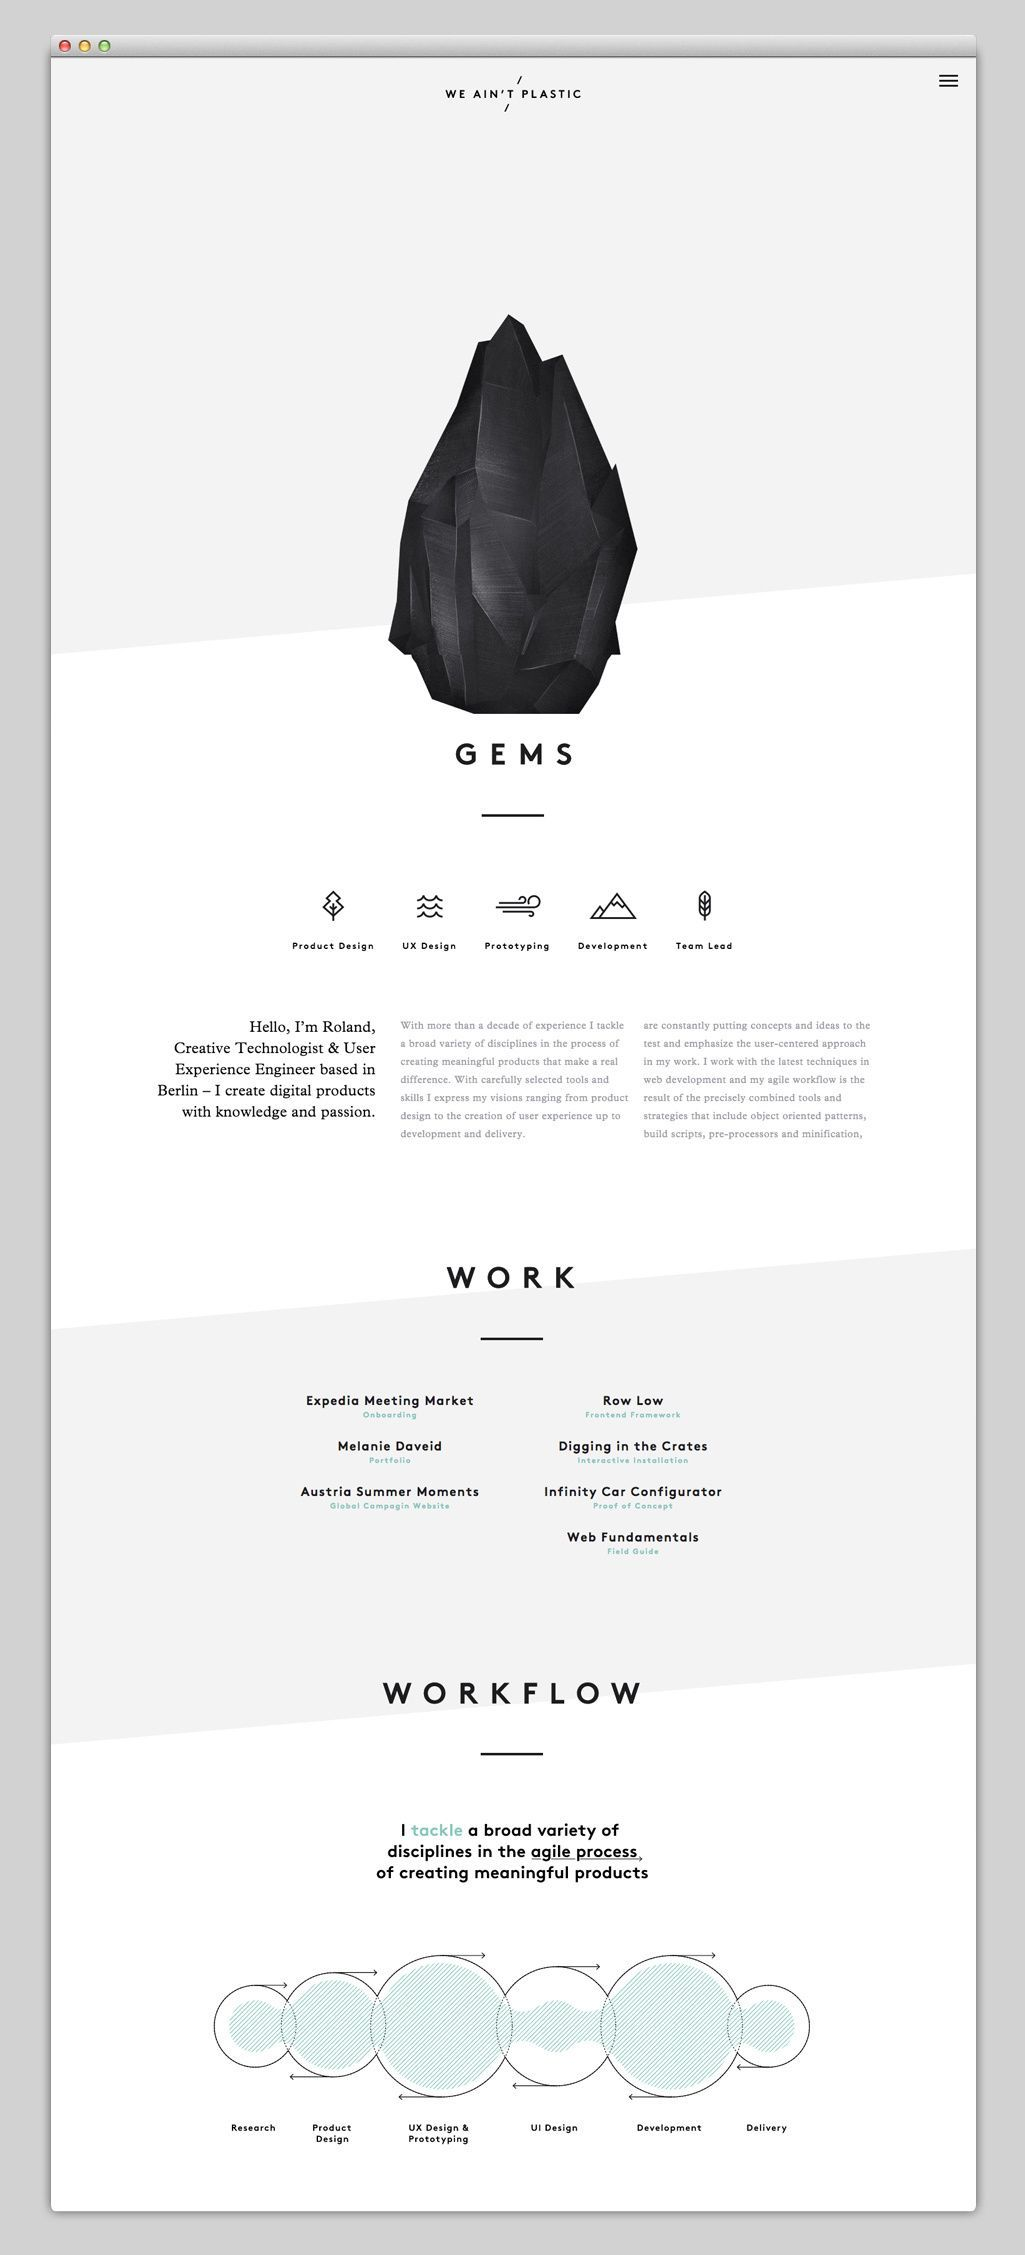 Www Mindsparklema A Showcase Of Effective And Beautiful Web Design Web Design In 2020 Beautiful Web Design Minimal Web Design Website Design Inspiration